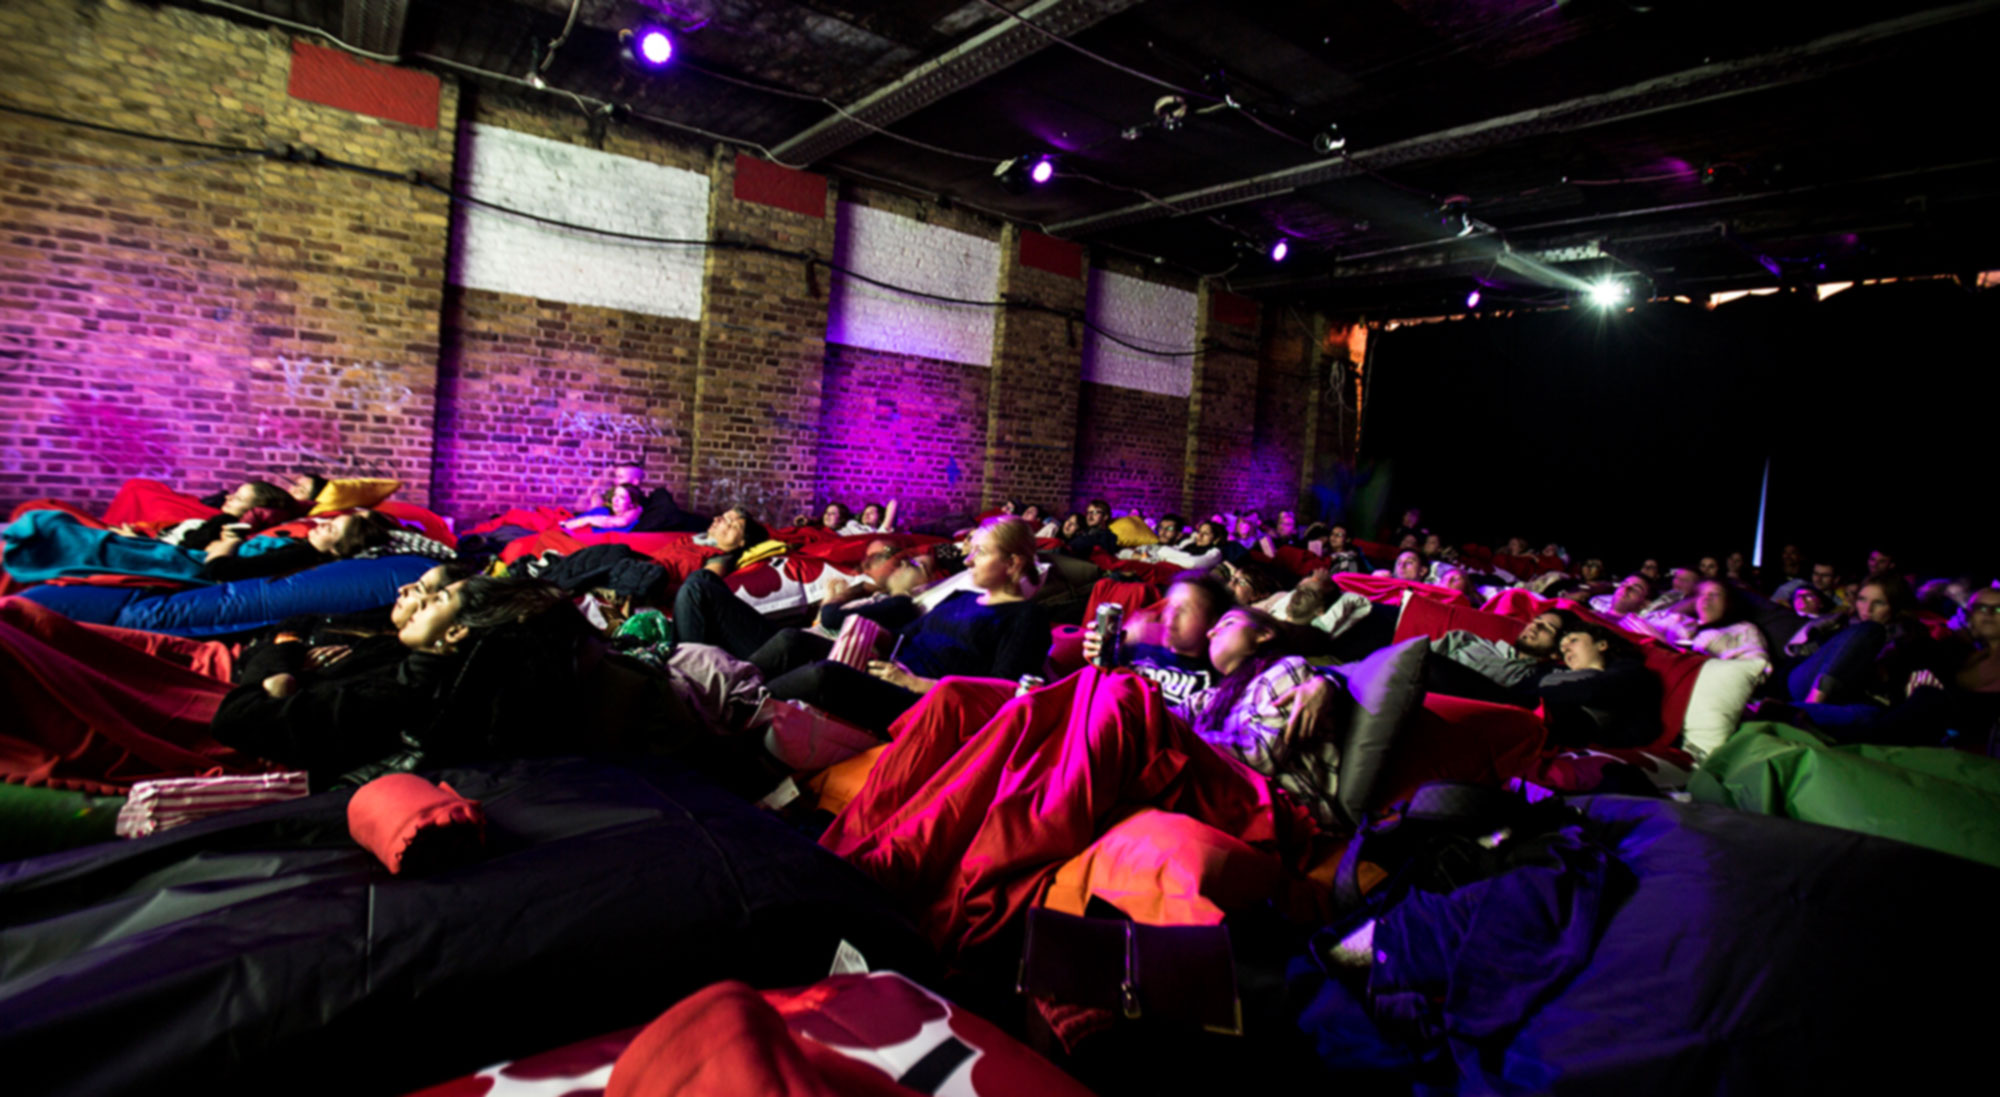 east london sofa cinema l ikea top 10 things to do and see in shoreditch